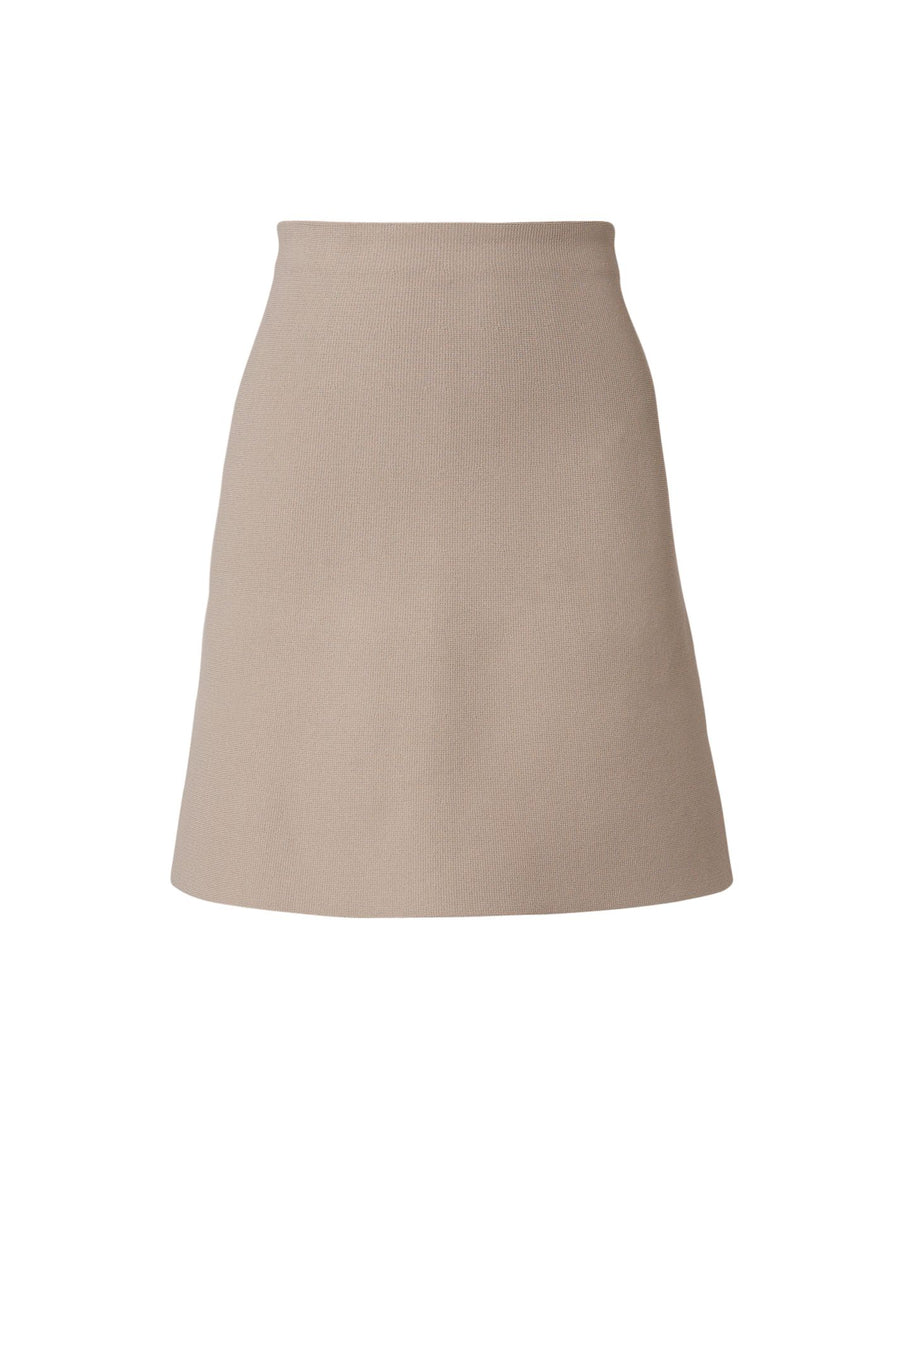 The Crepe Knit A-Line Skirt is fitted at the waist, has an A-line body, and sits above the knee